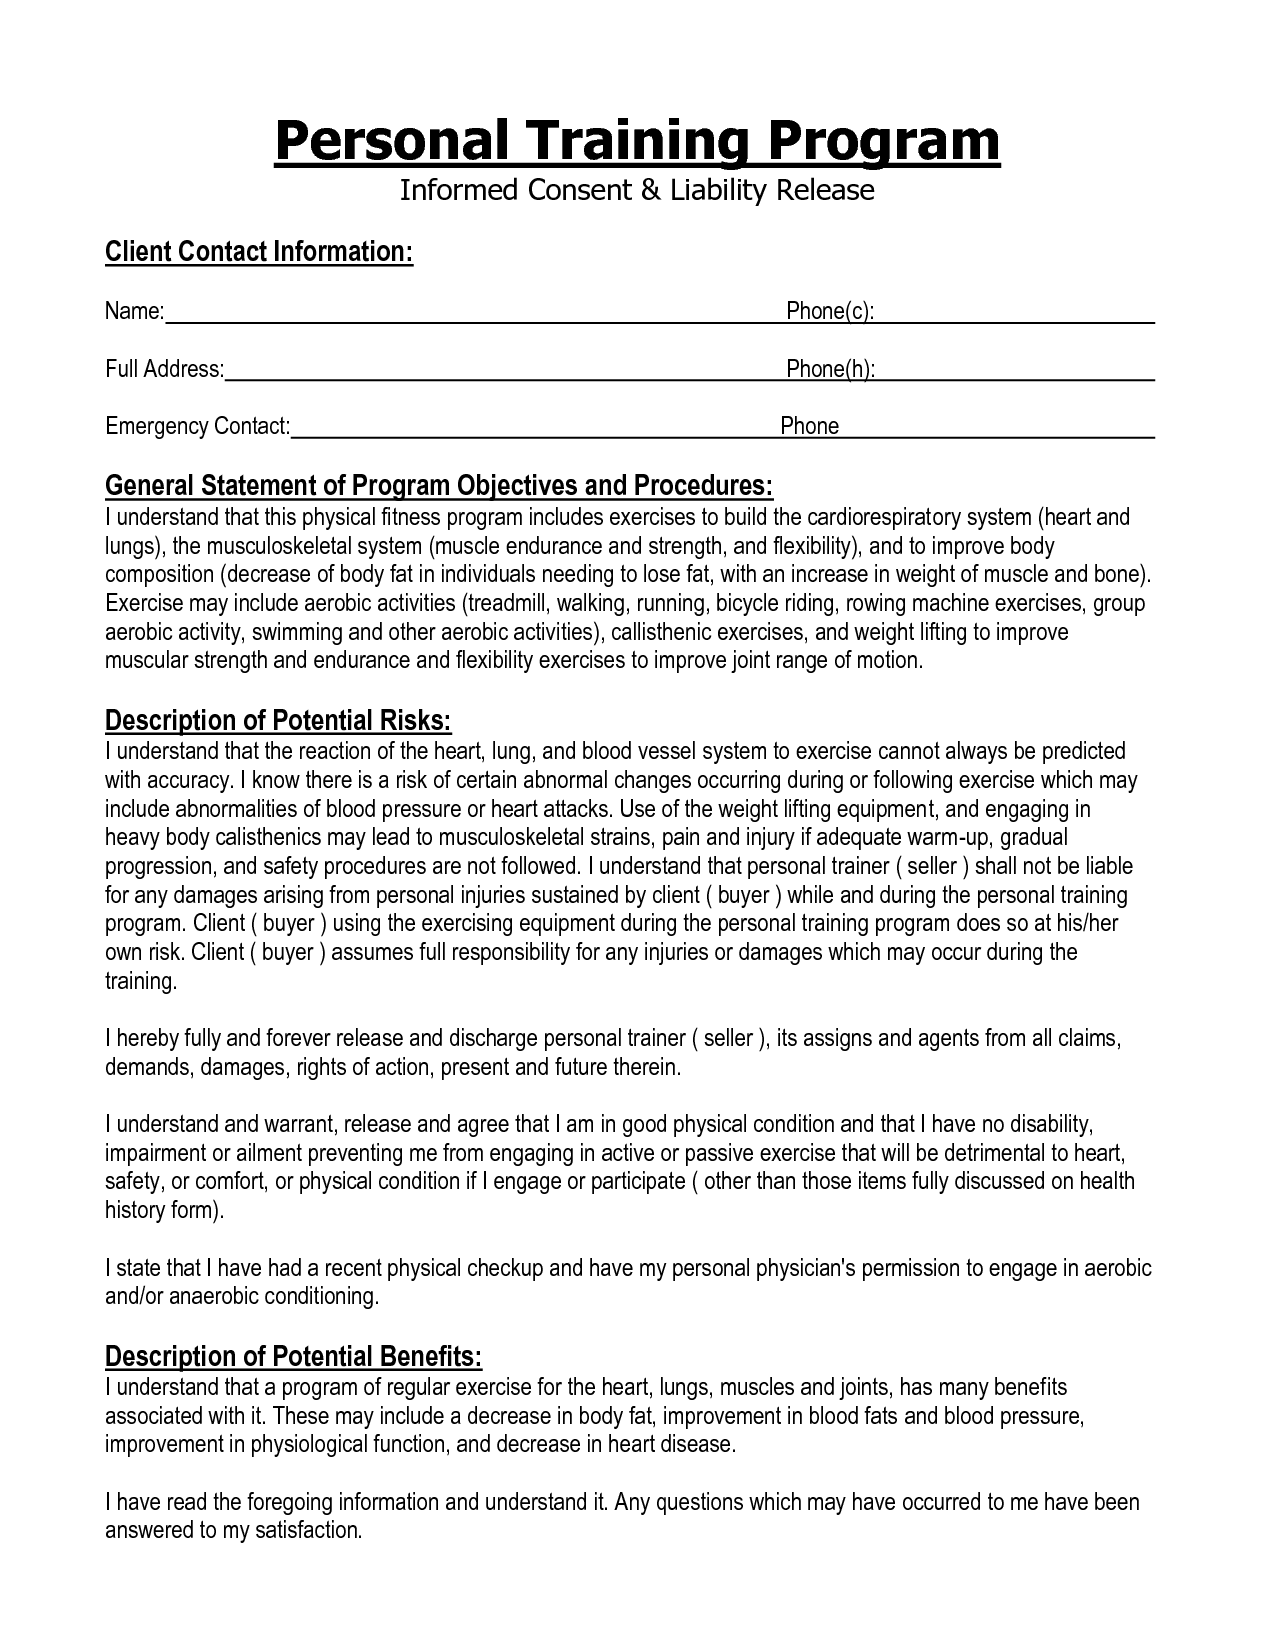 Informed Consent Form Personal Training  Google Search  Health